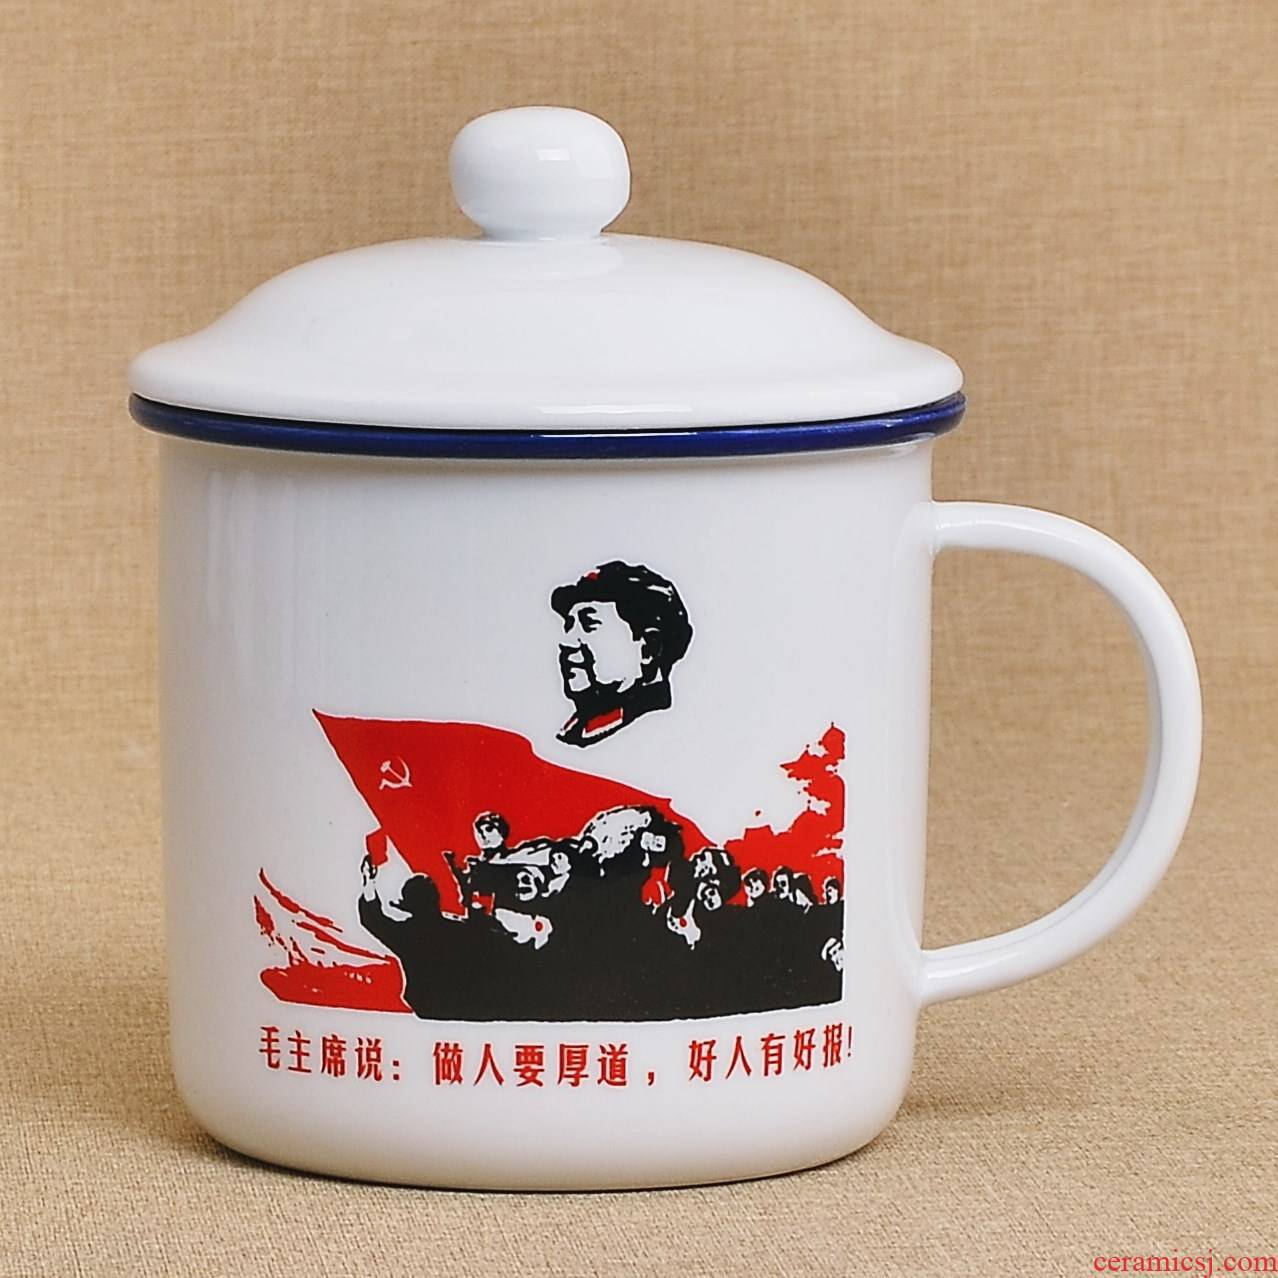 Small tea urn ginseng wine ChaGangZi chairman MAO MAO name nostalgic old iron magnetic steel cups cup enamel cup